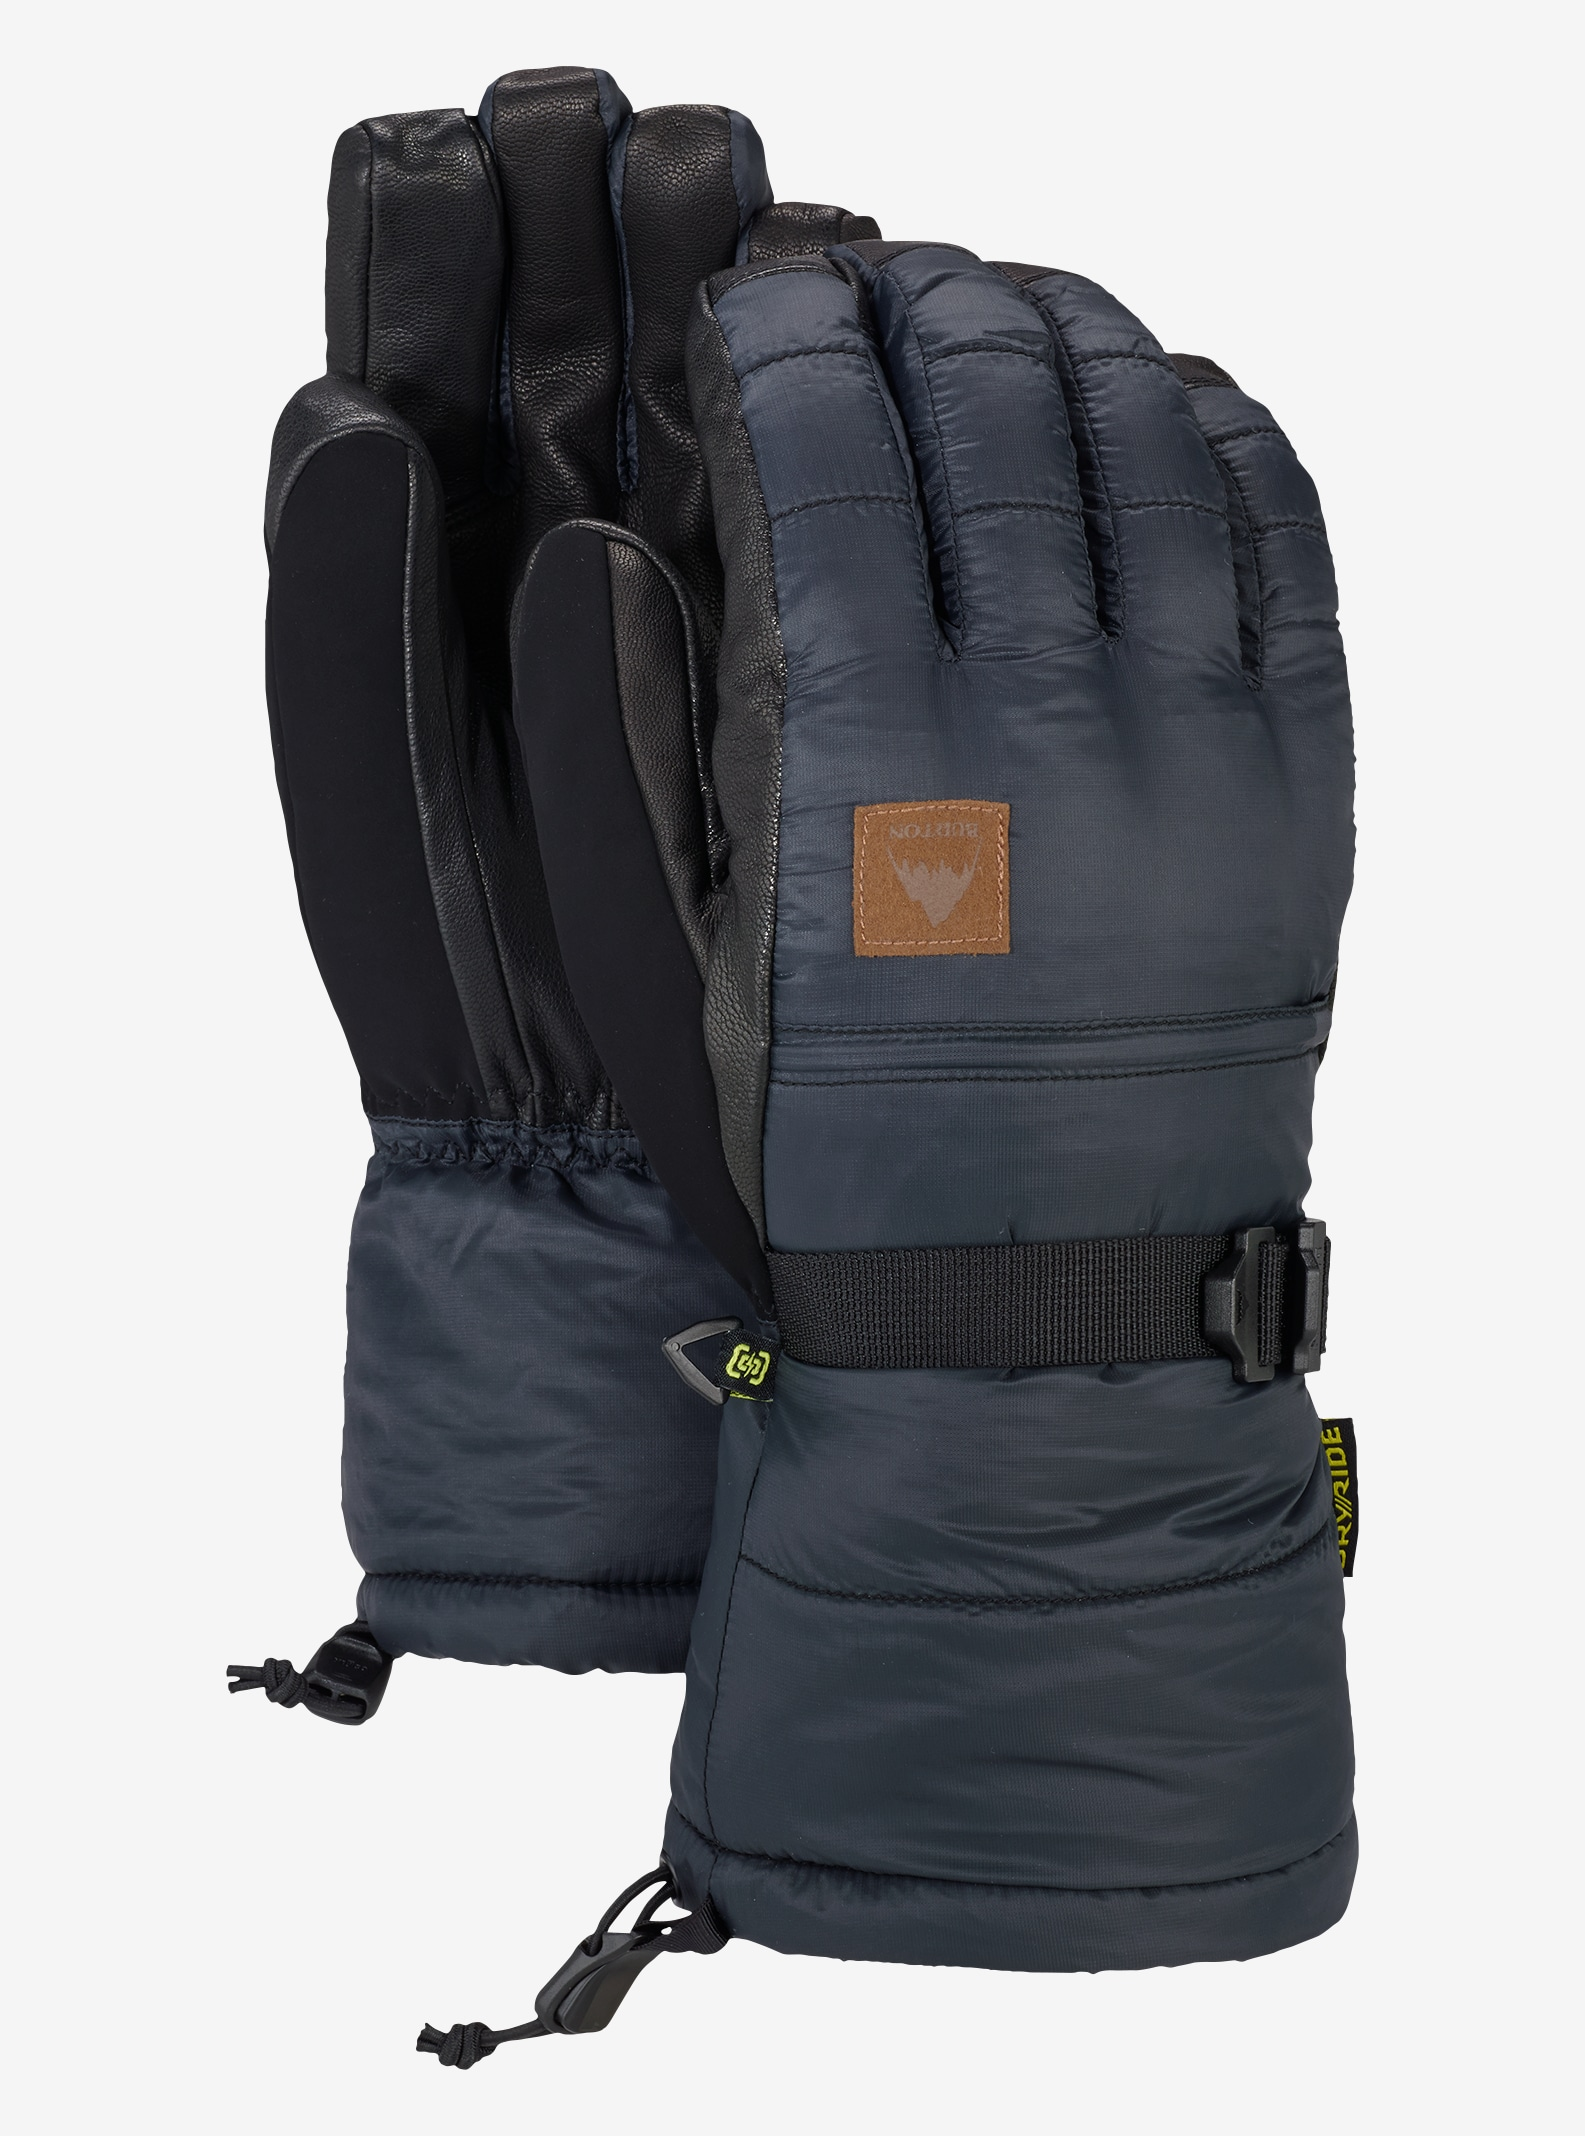 Men's Burton Warmest Glove shown in True Black